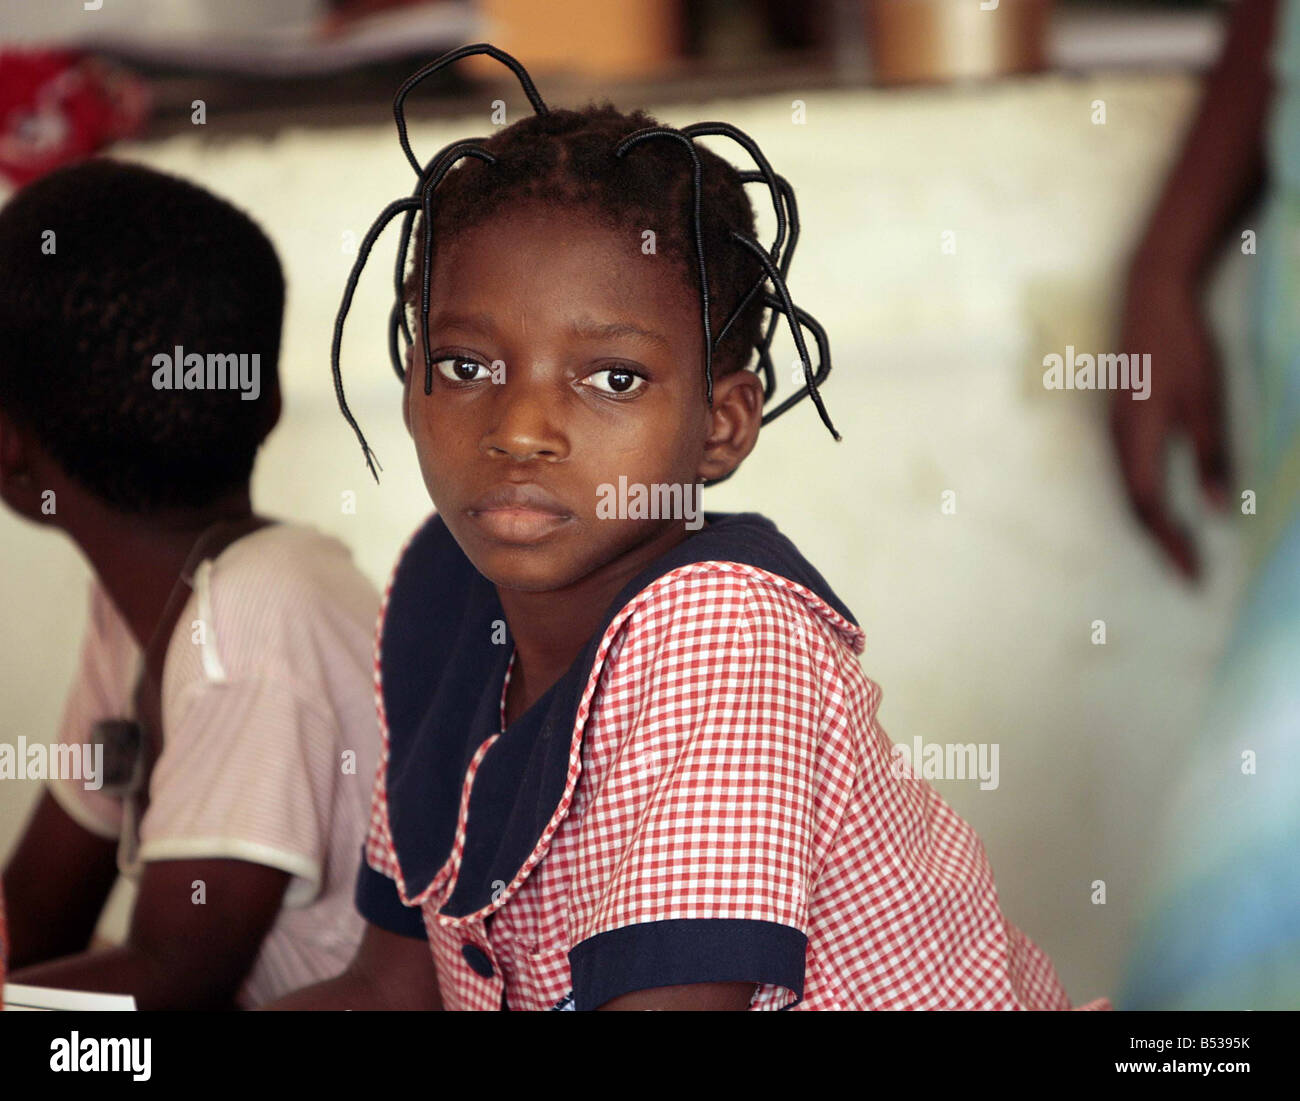 Child Slaves in Benin West Africa February 2007 Nine year old Afi tells how she was sent away from home to work - Stock Image